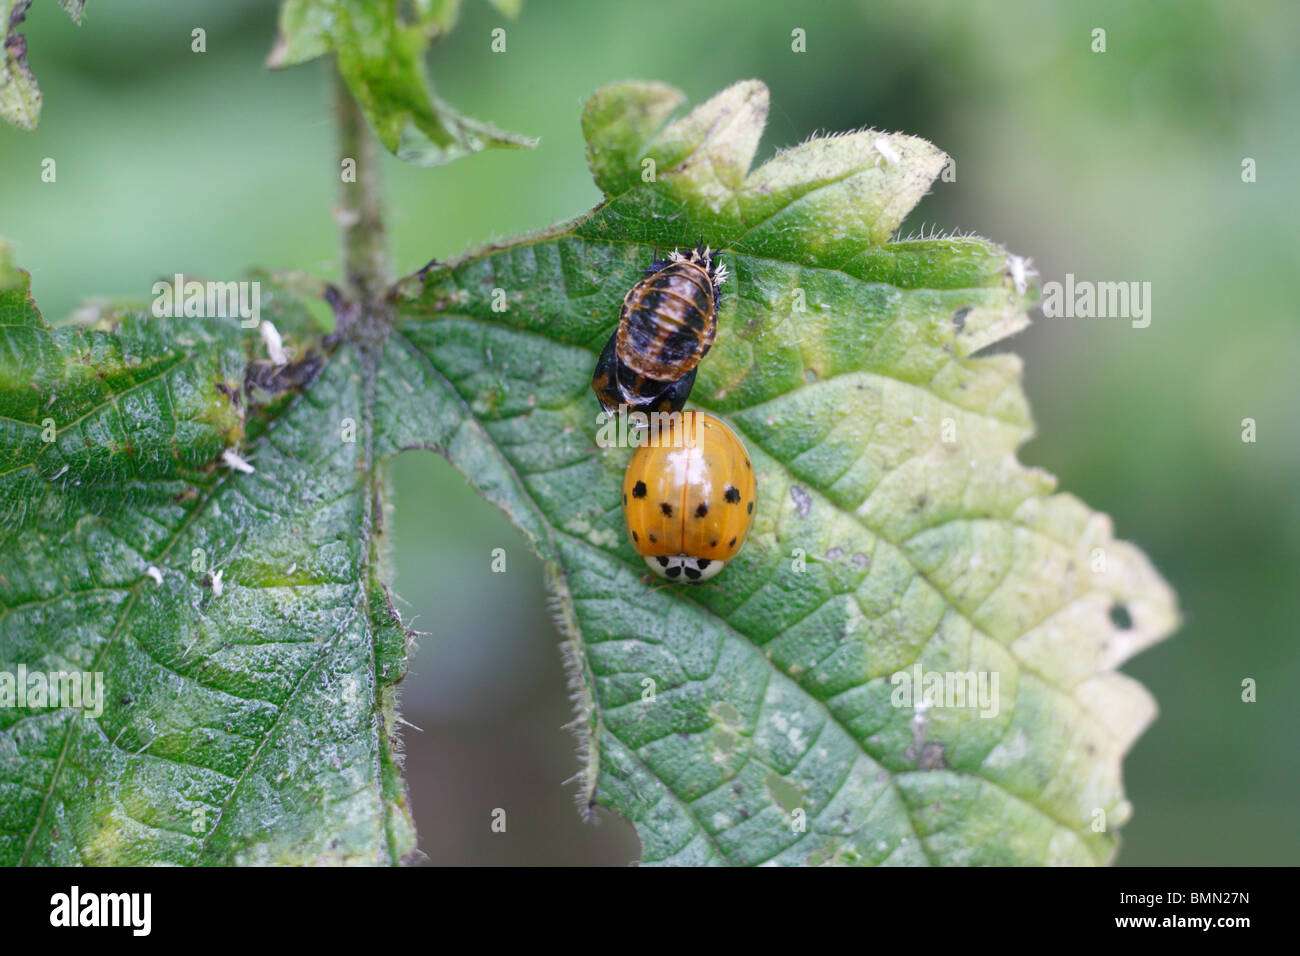 Harlequin ladybird (Harmonia axyridis) recently hatched with empty pupal case - Stock Image